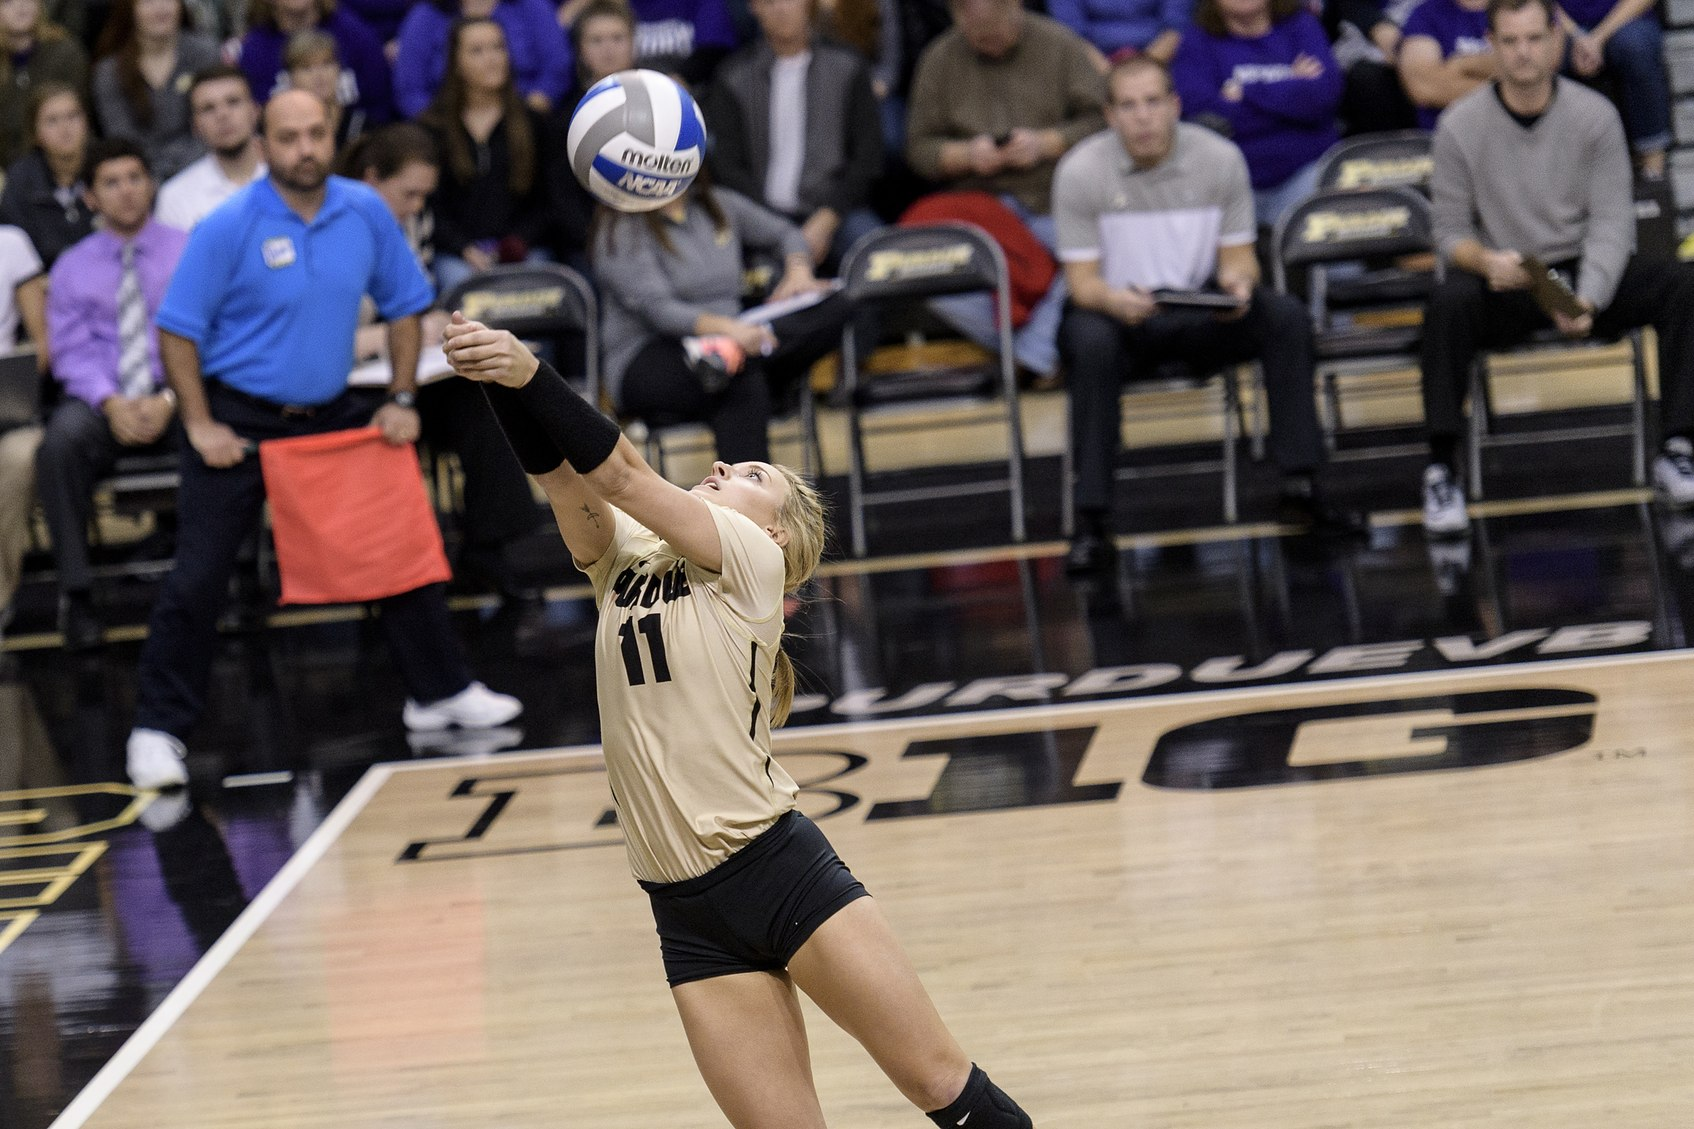 Damler got a number of key digs against Iowa; might have to see about capping some of those.